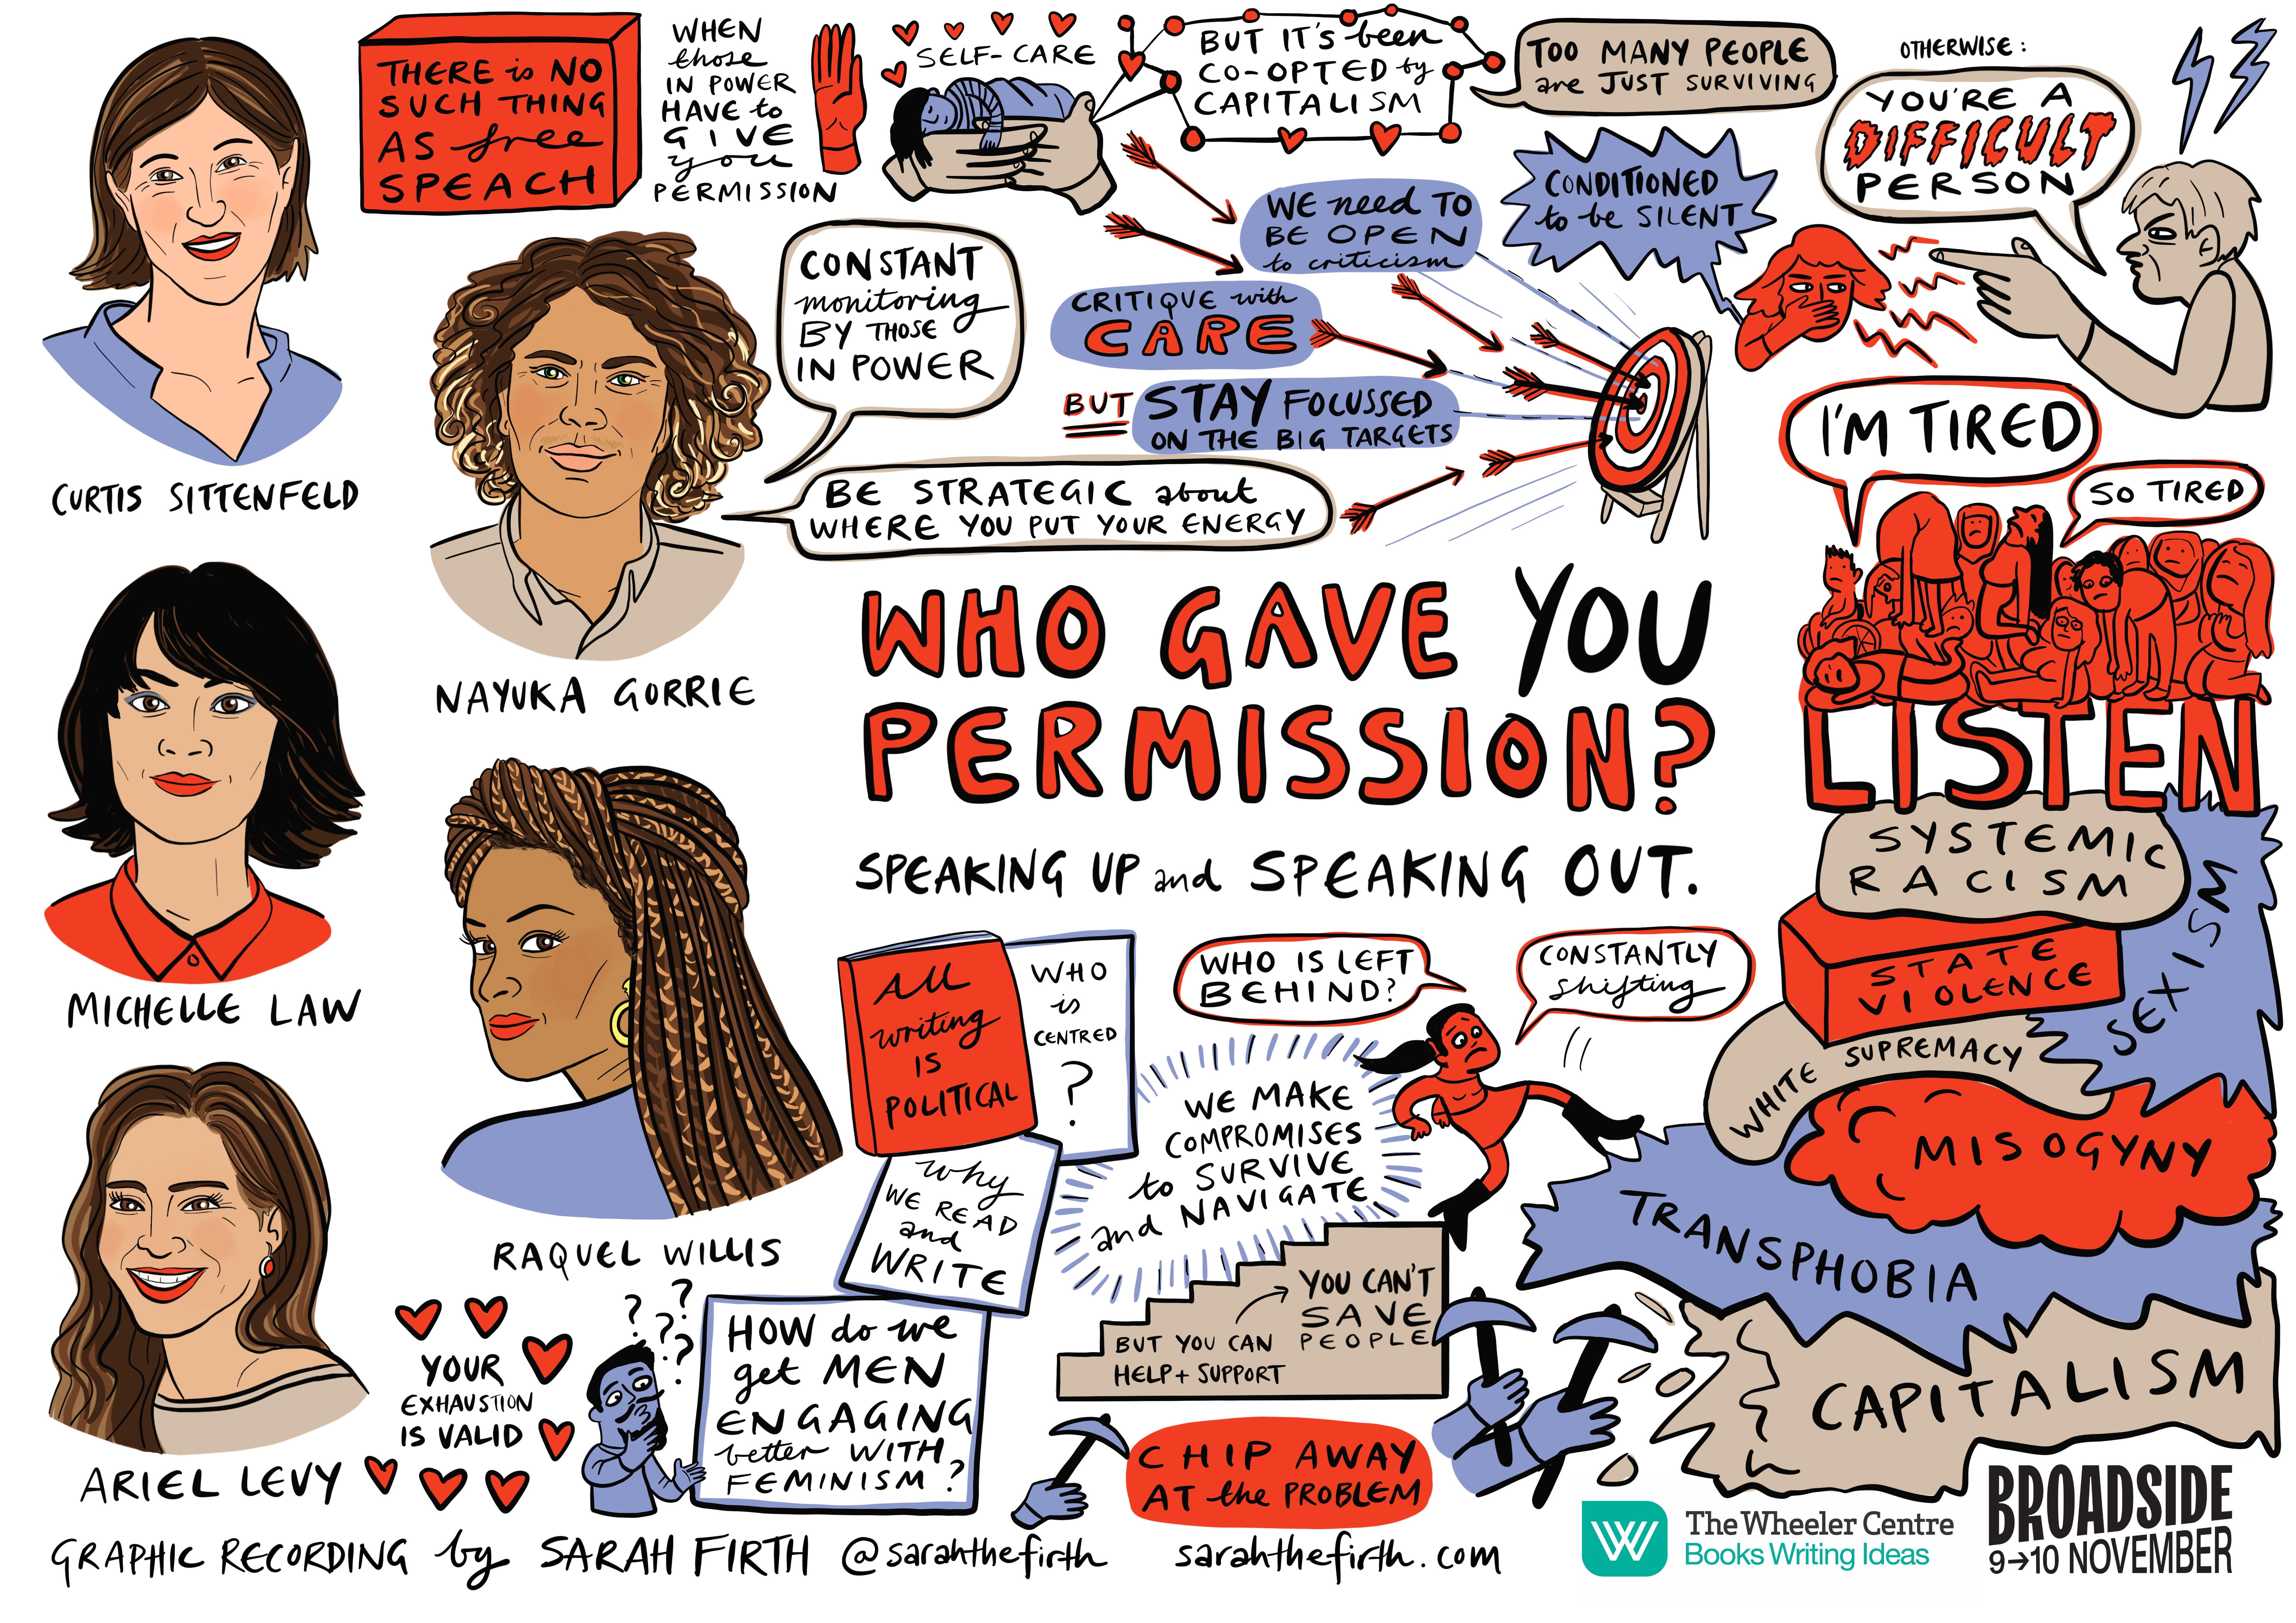 Illustrated portraits of Curtis Sittenfeld, Nayuka Gorrie, Michelle Law, Raquel Willis and Ariel Levy, with cartoons and quotes reflecting their onstage conversation